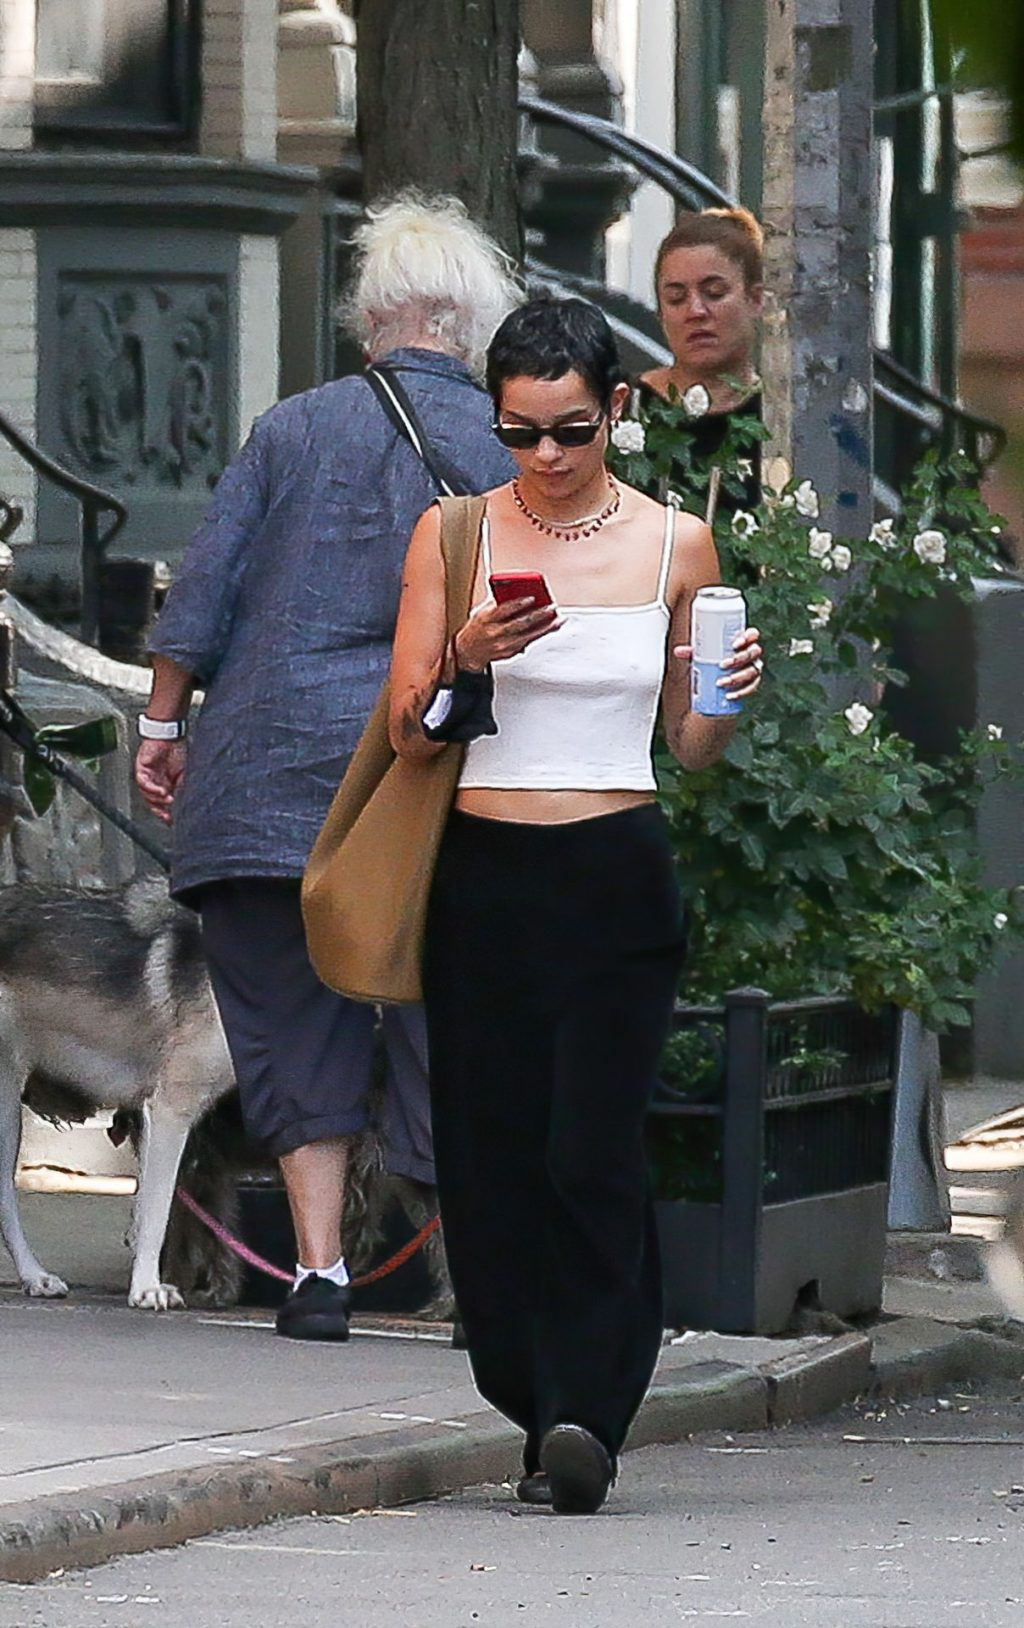 Zoe Kravitz is Pictured Braless on a Solo Stroll in NYC (6 Photos)